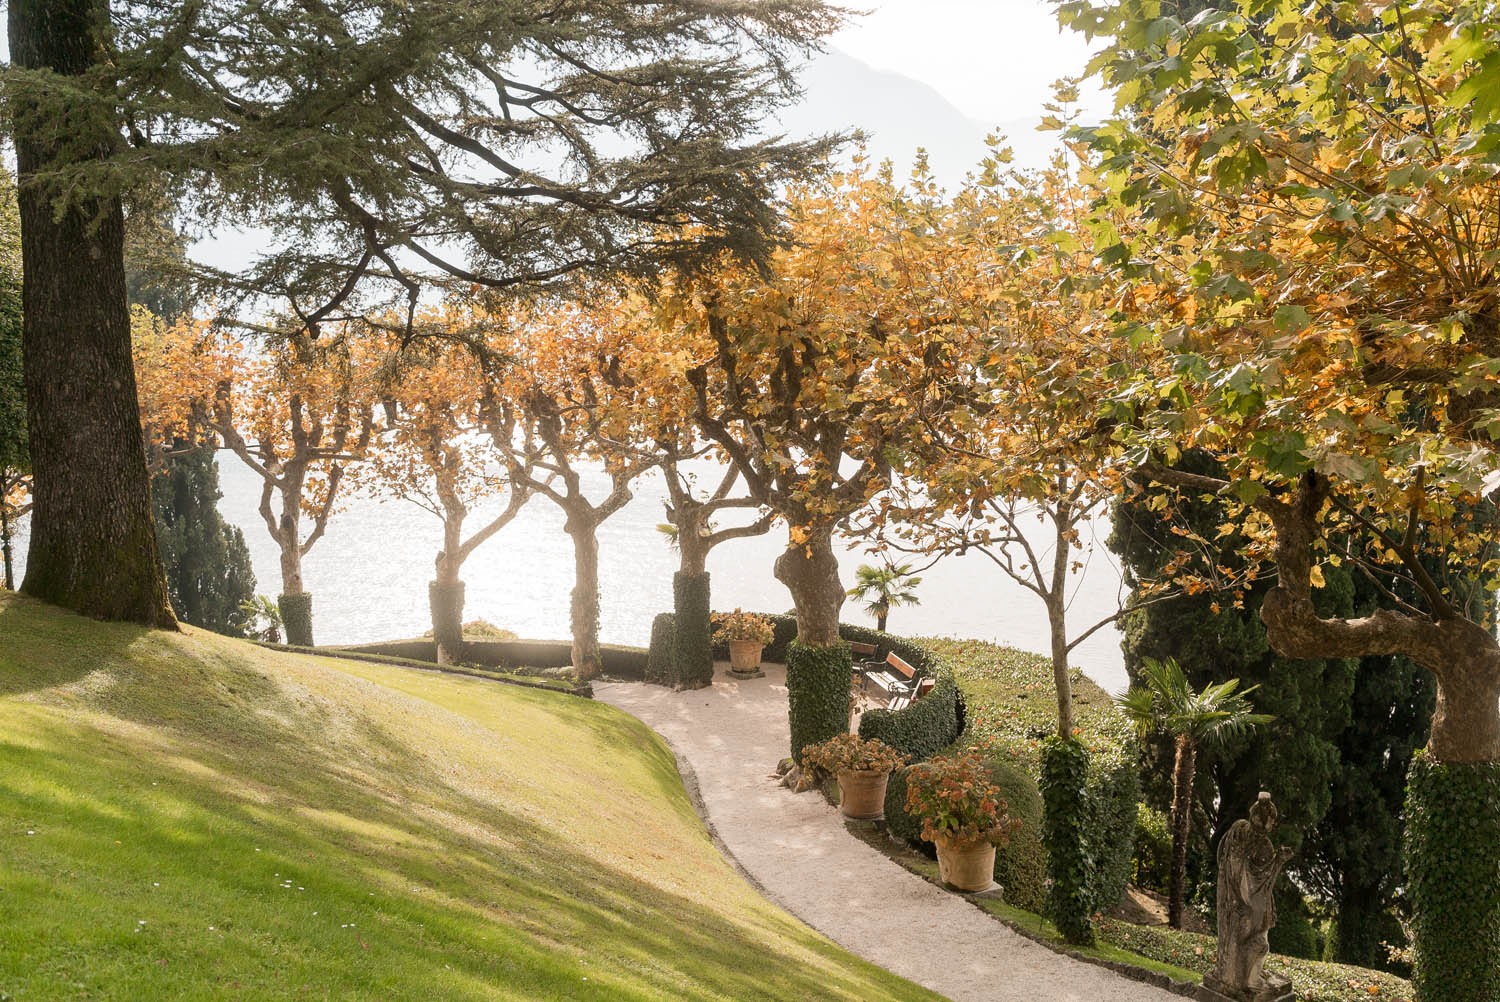 lake como villa balbianello wedding venue